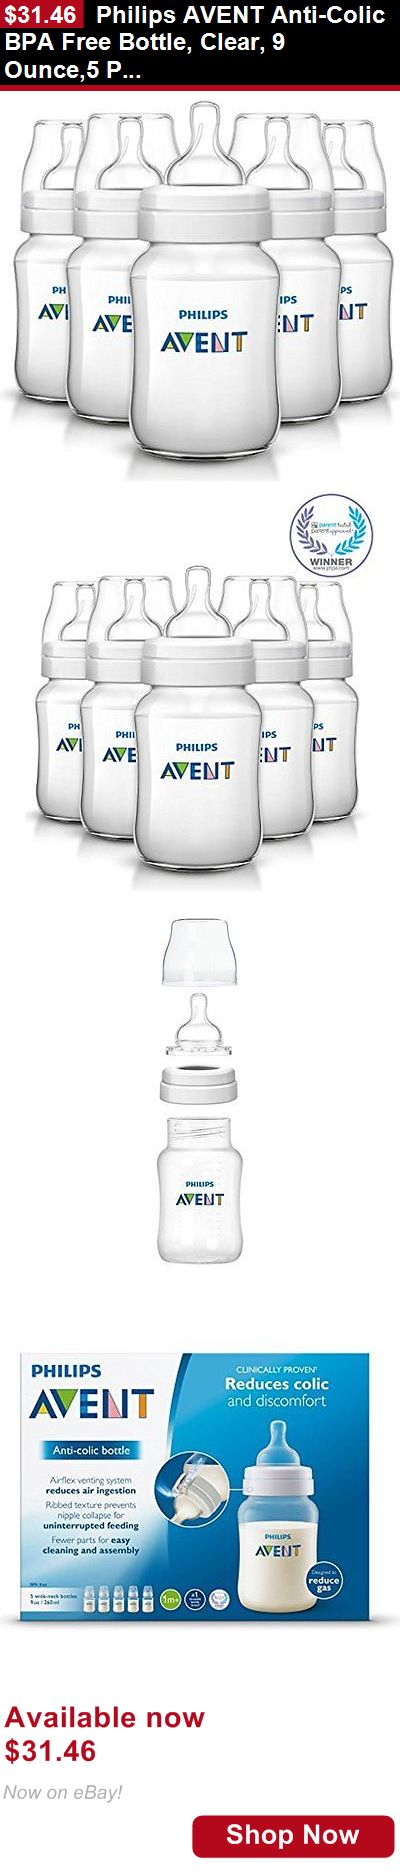 Baby Bottles: Philips Avent Anti-Colic Bpa Free Bottle, Clear, 9 Ounce,5 Piece BUY IT NOW ONLY: $31.46